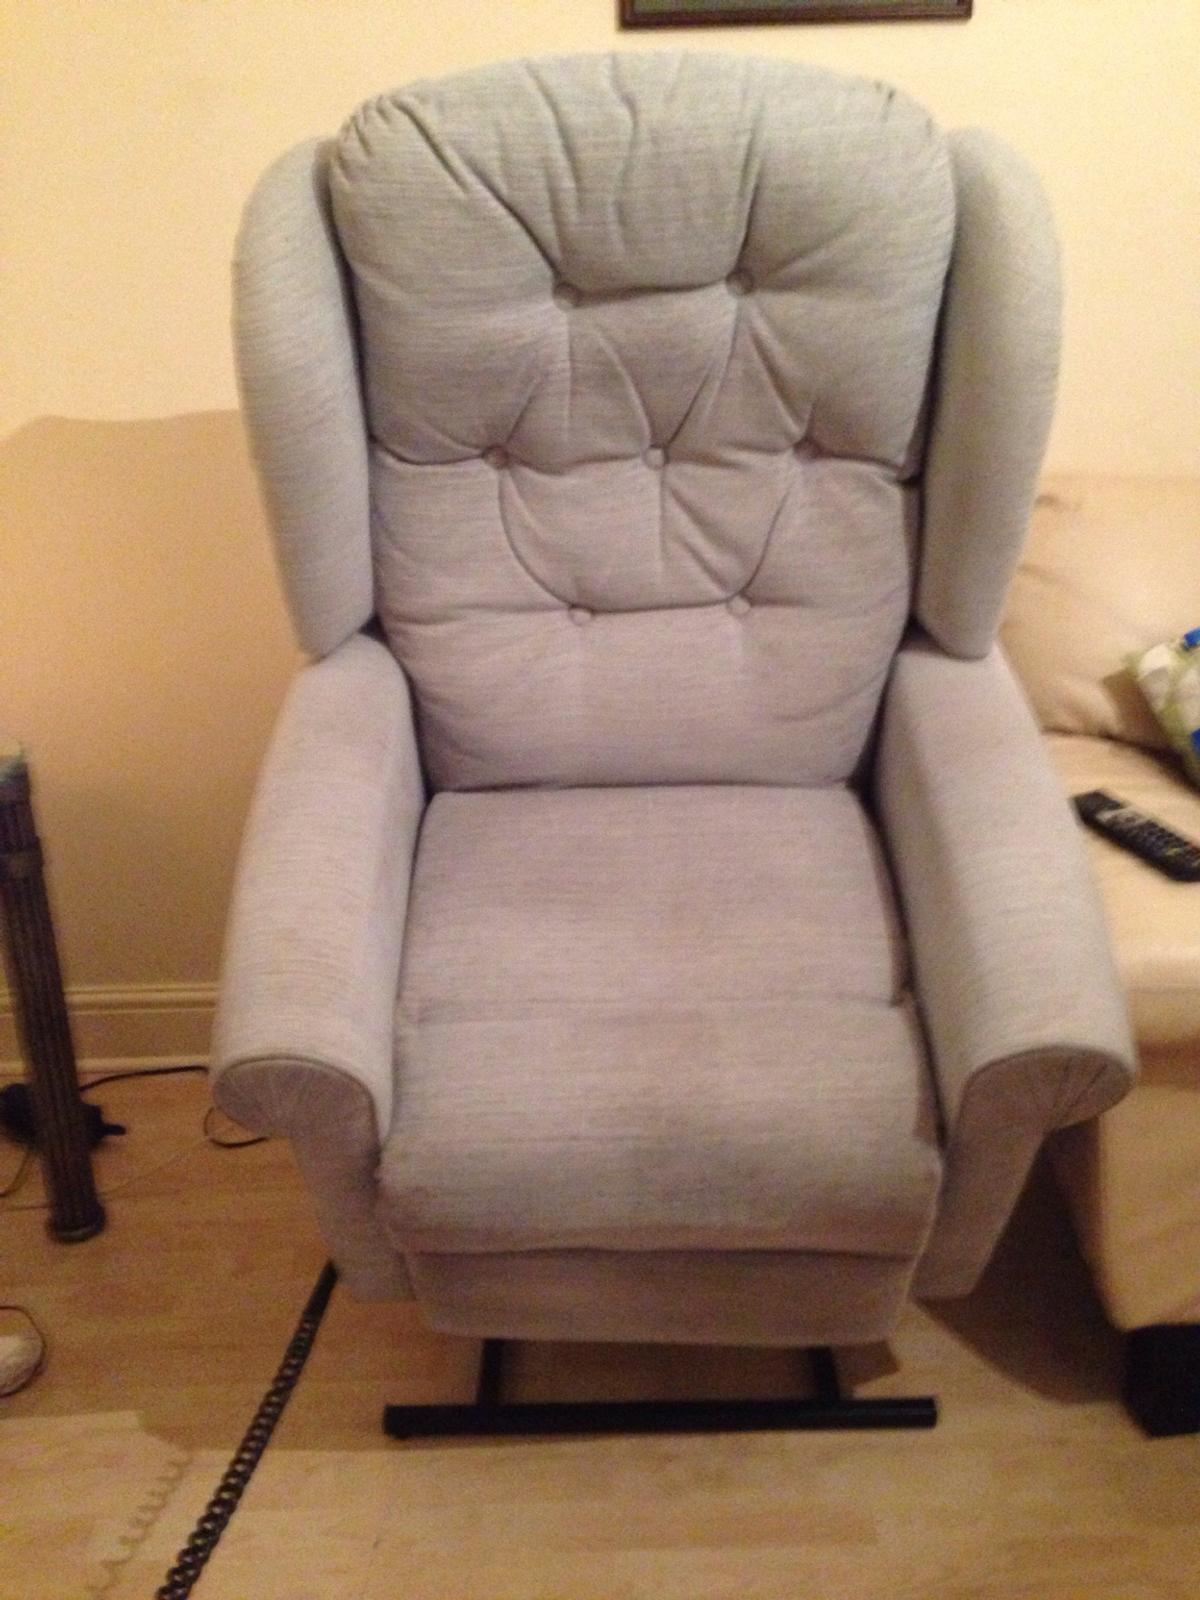 HSL recliner chair in BB3 Darwen for £50.00 for sale | Shpock